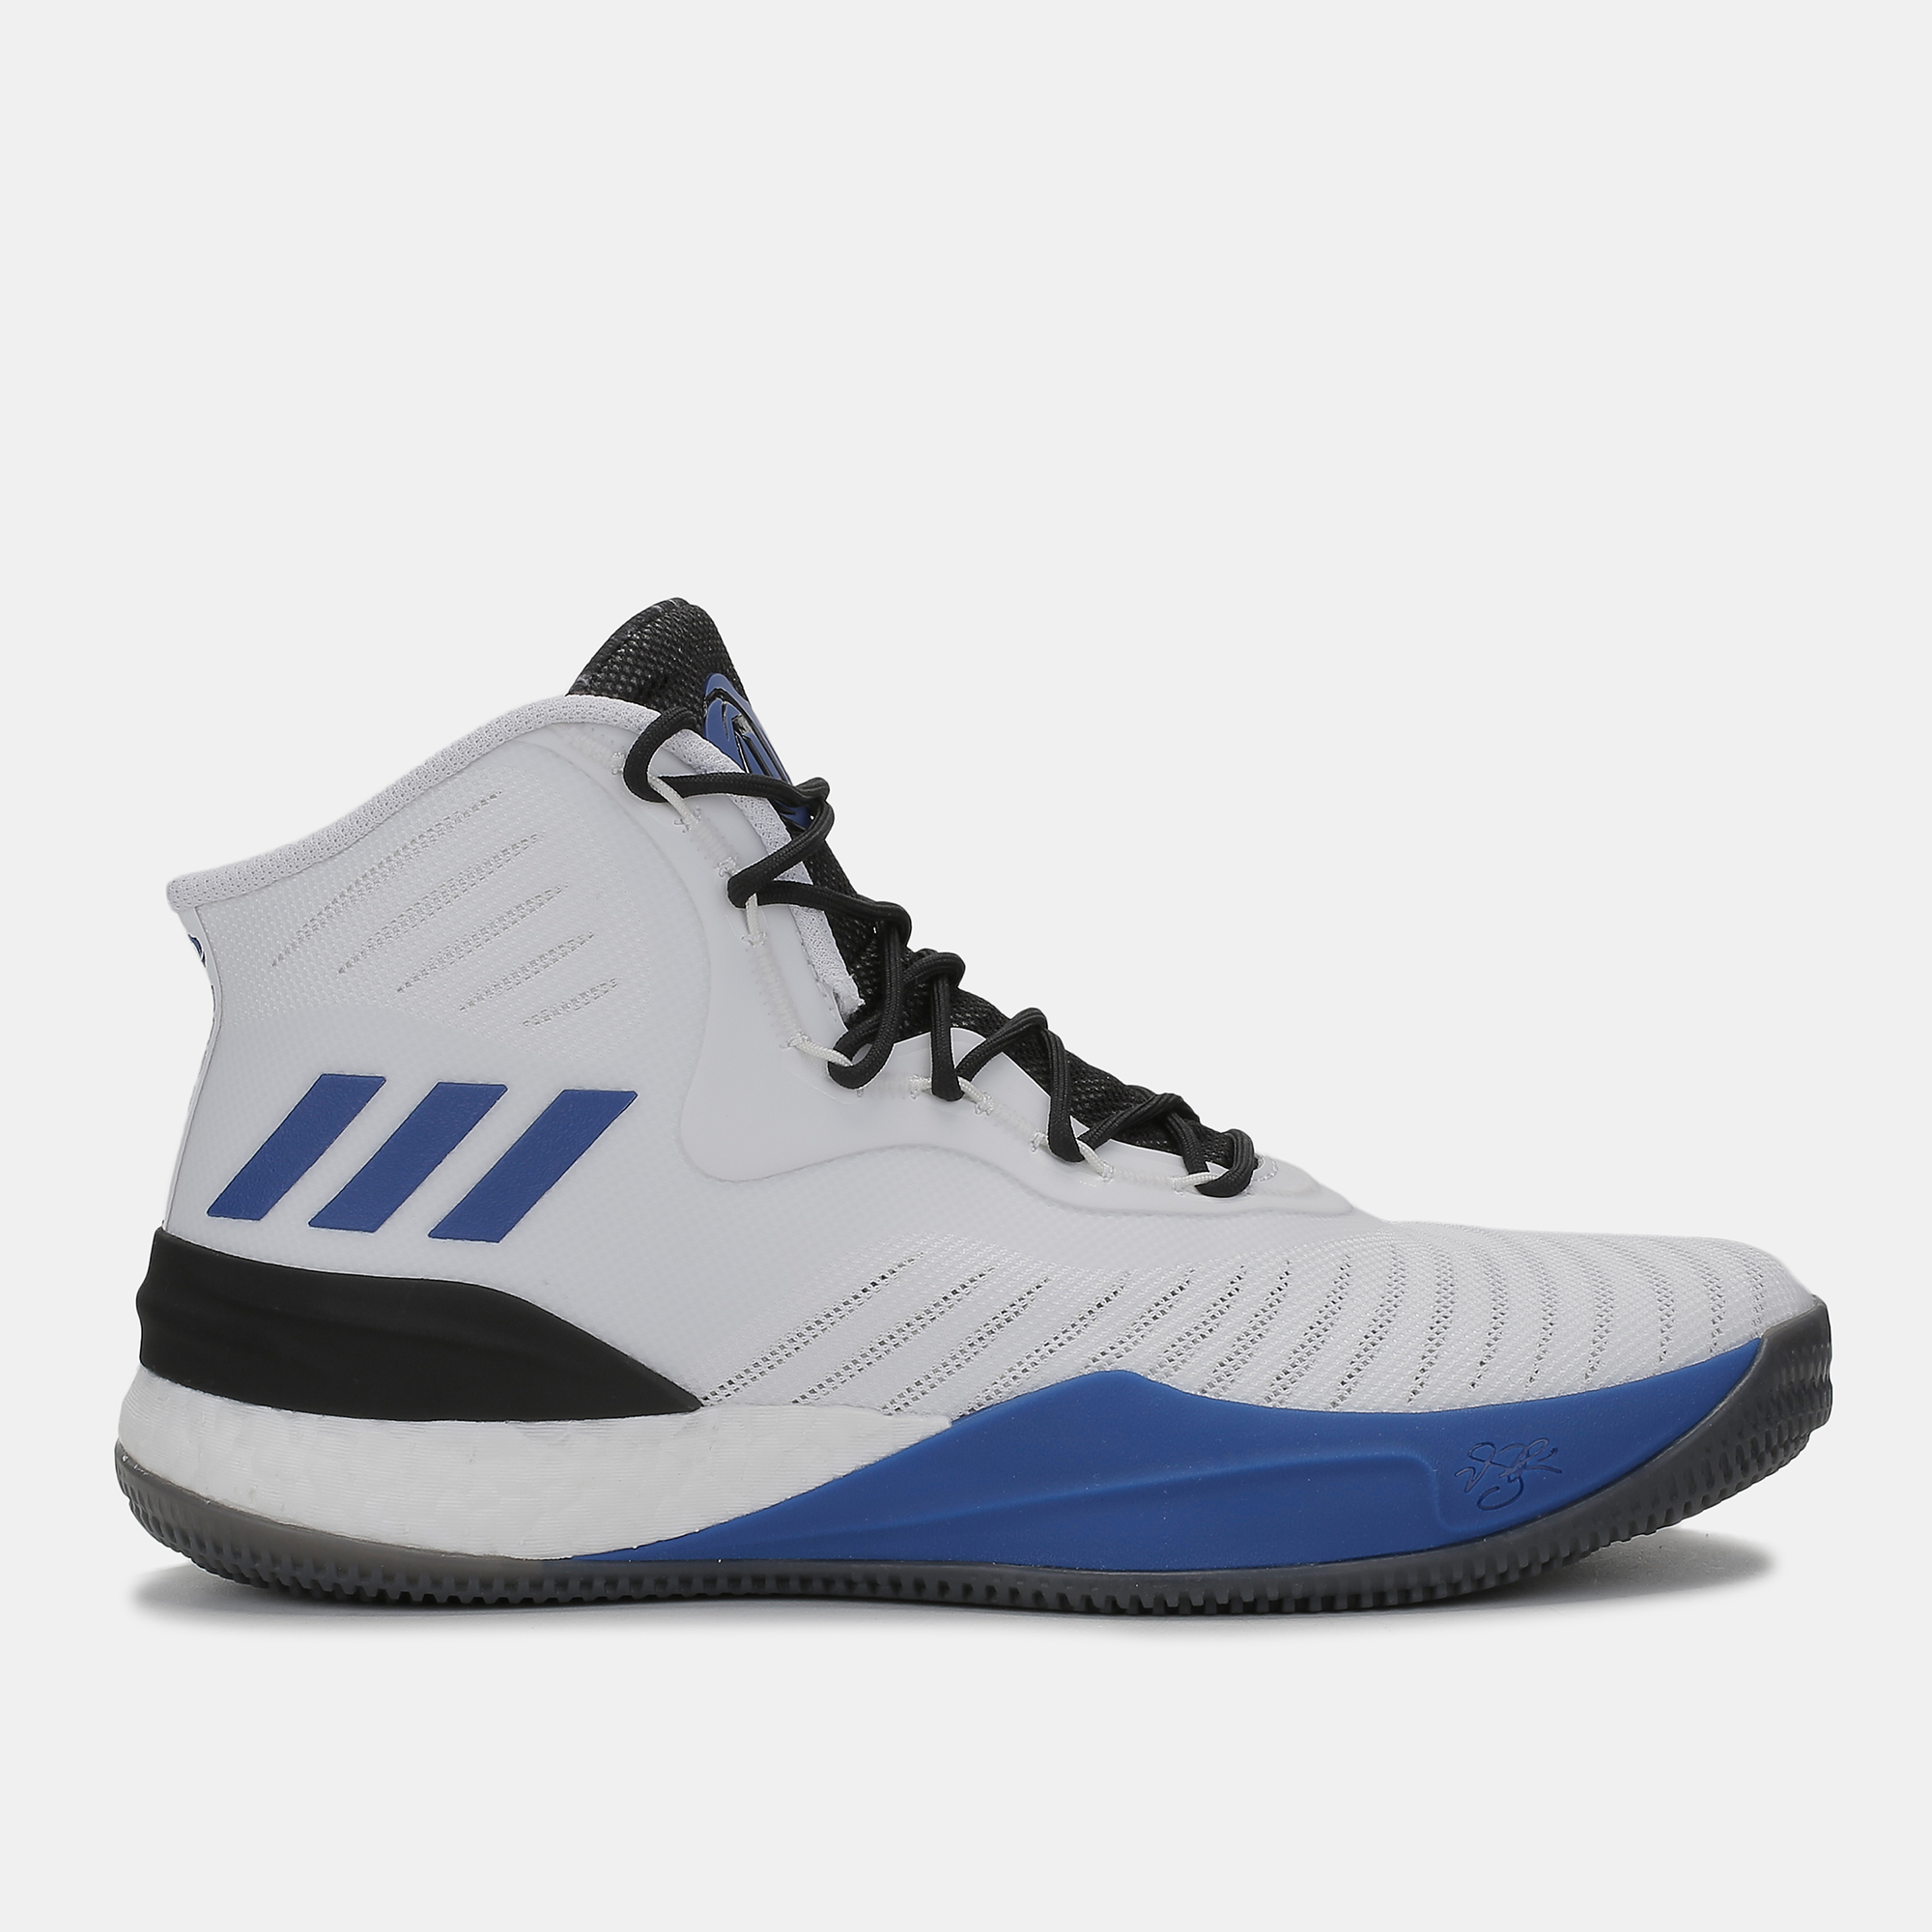 8d694c60249f Shop White adidas D Rose 8 Basketball Shoe for Mens by adidas